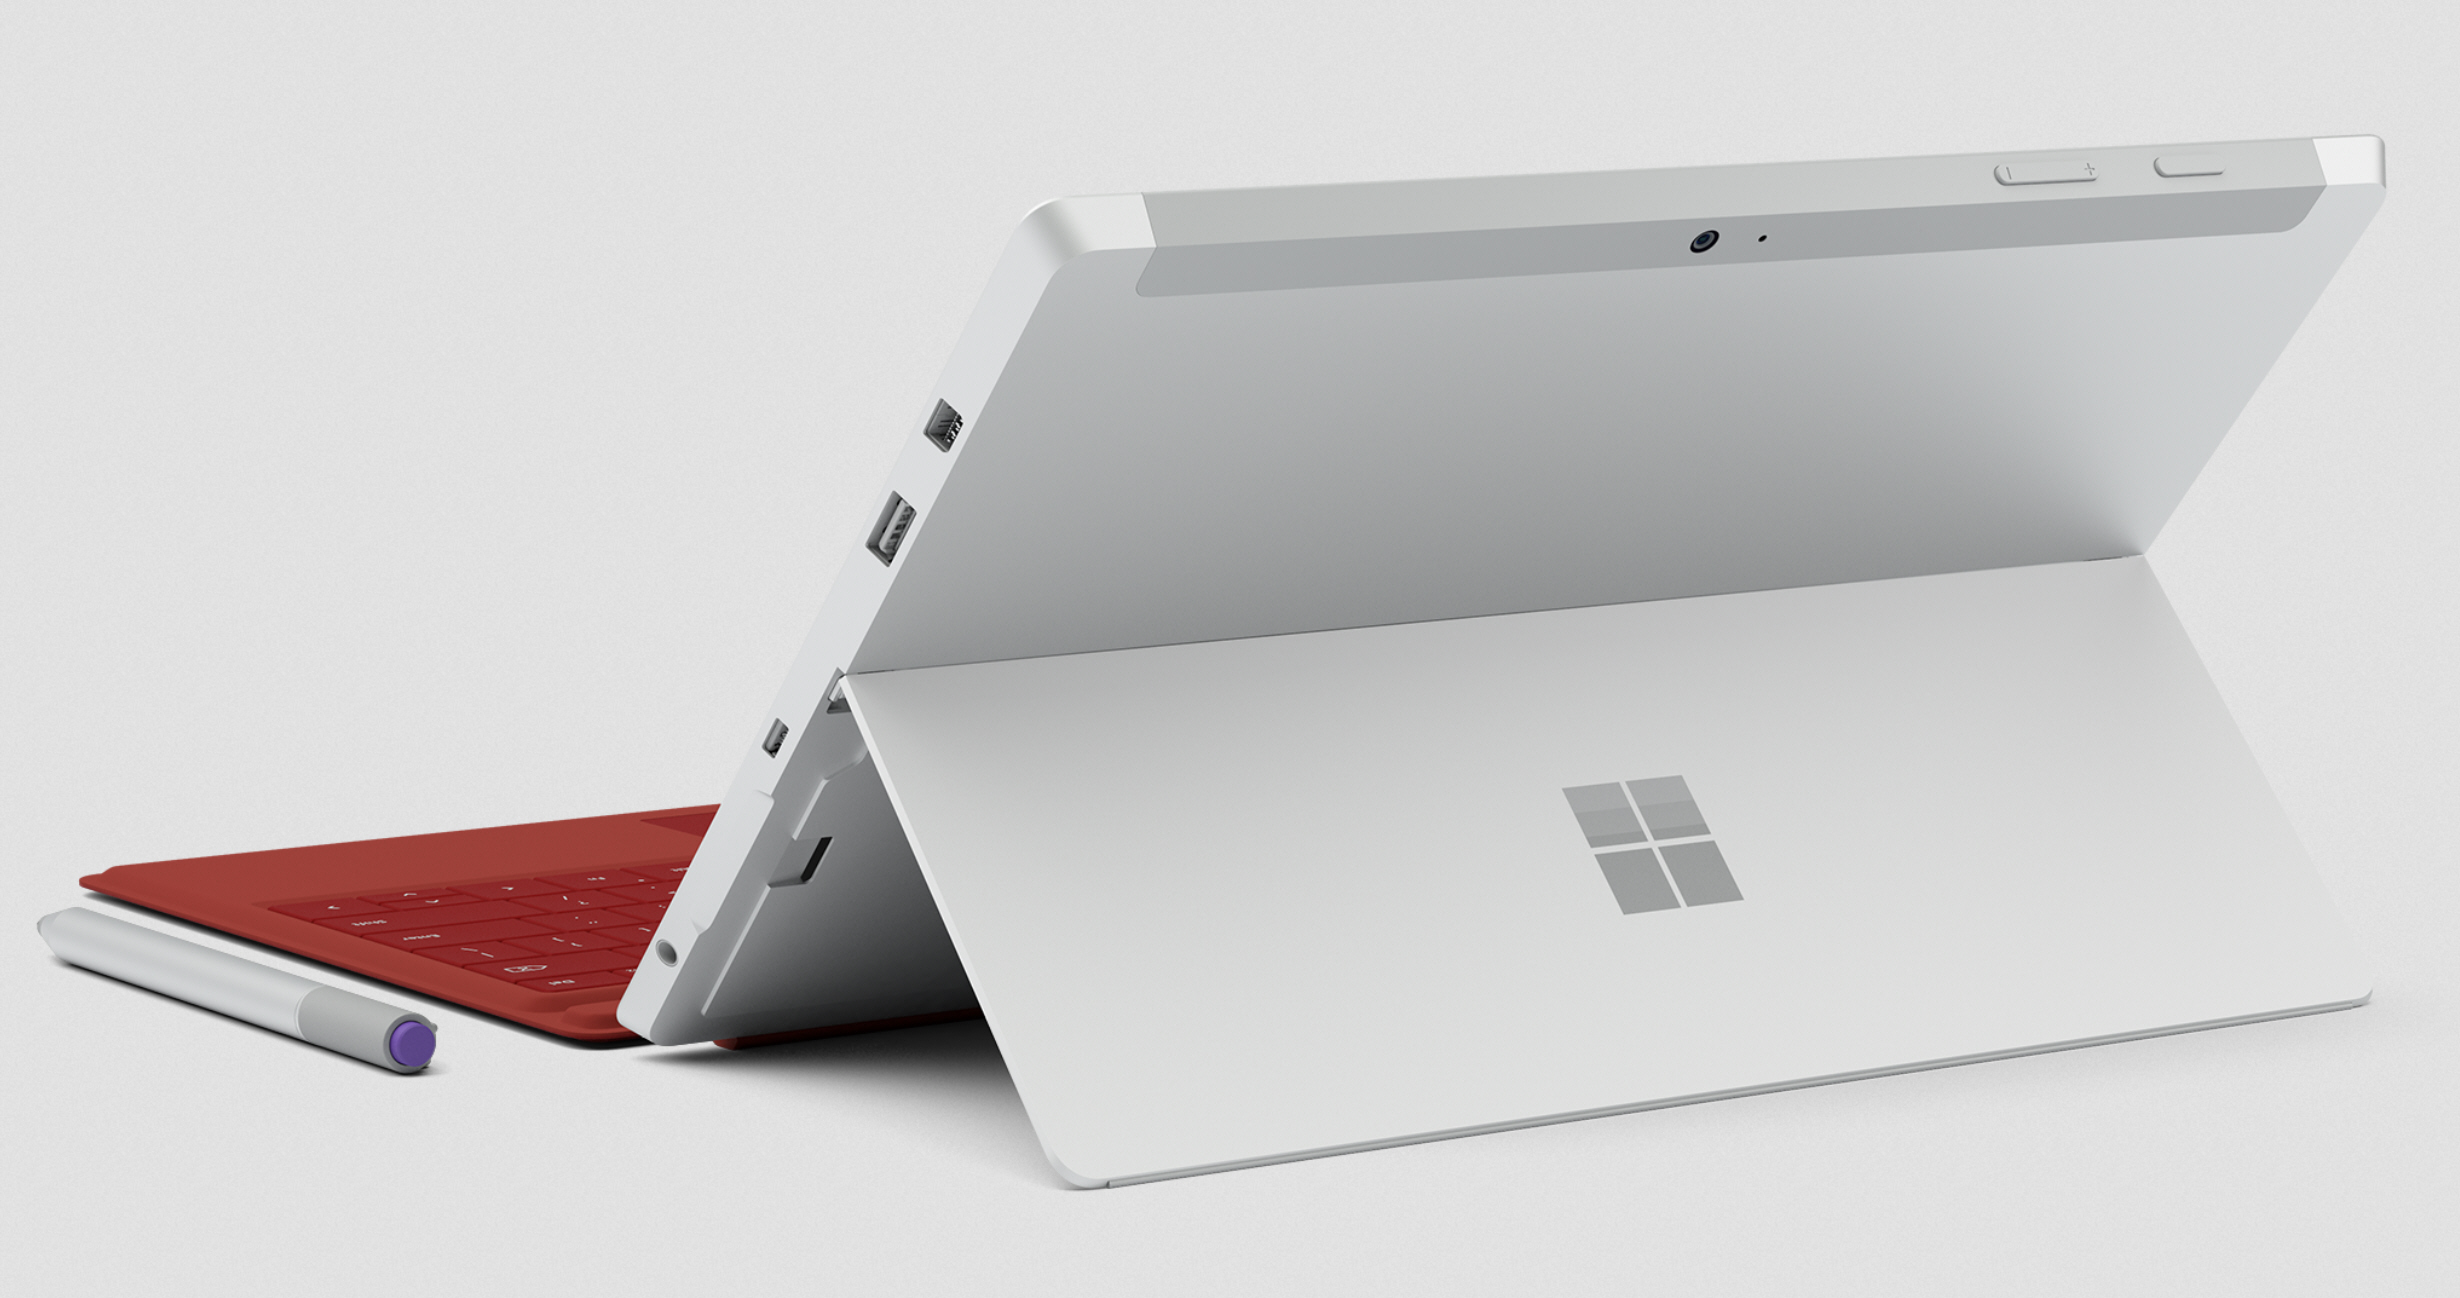 Microsoft Announces Surface 3 Thinner Lighter And